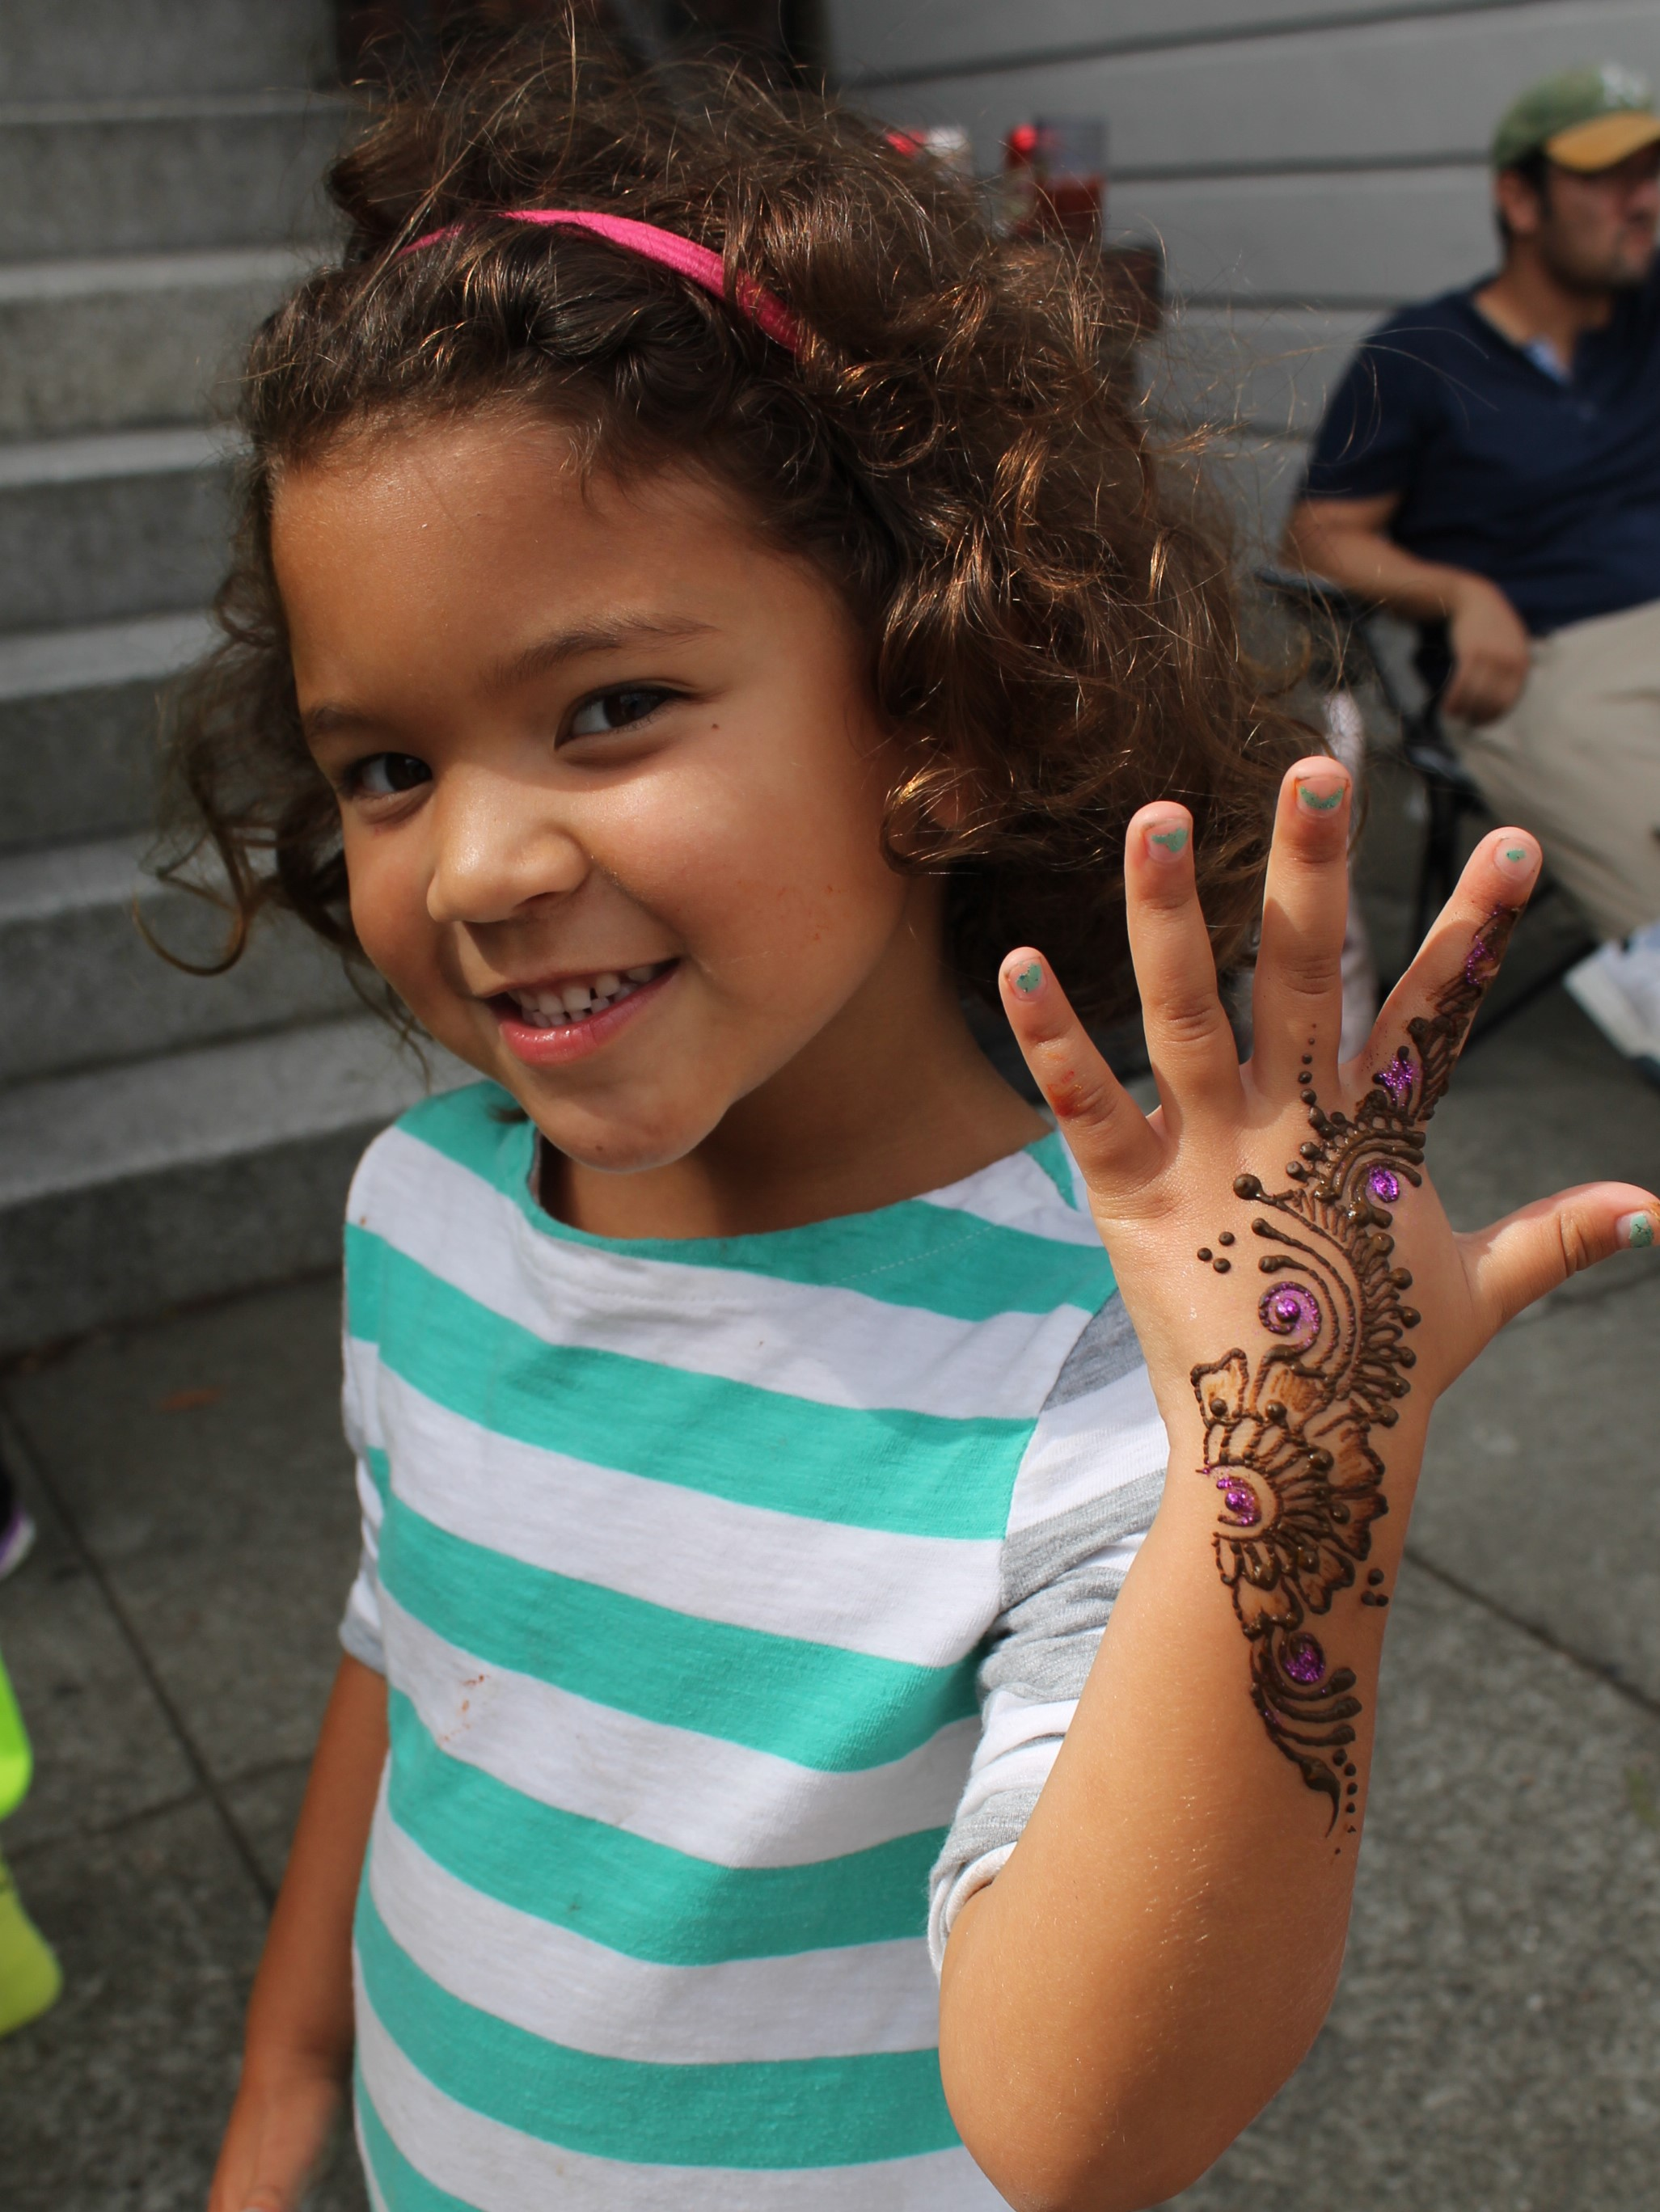 Girl showing off the henna pattern on her hand at an outdoor neighborhood festival